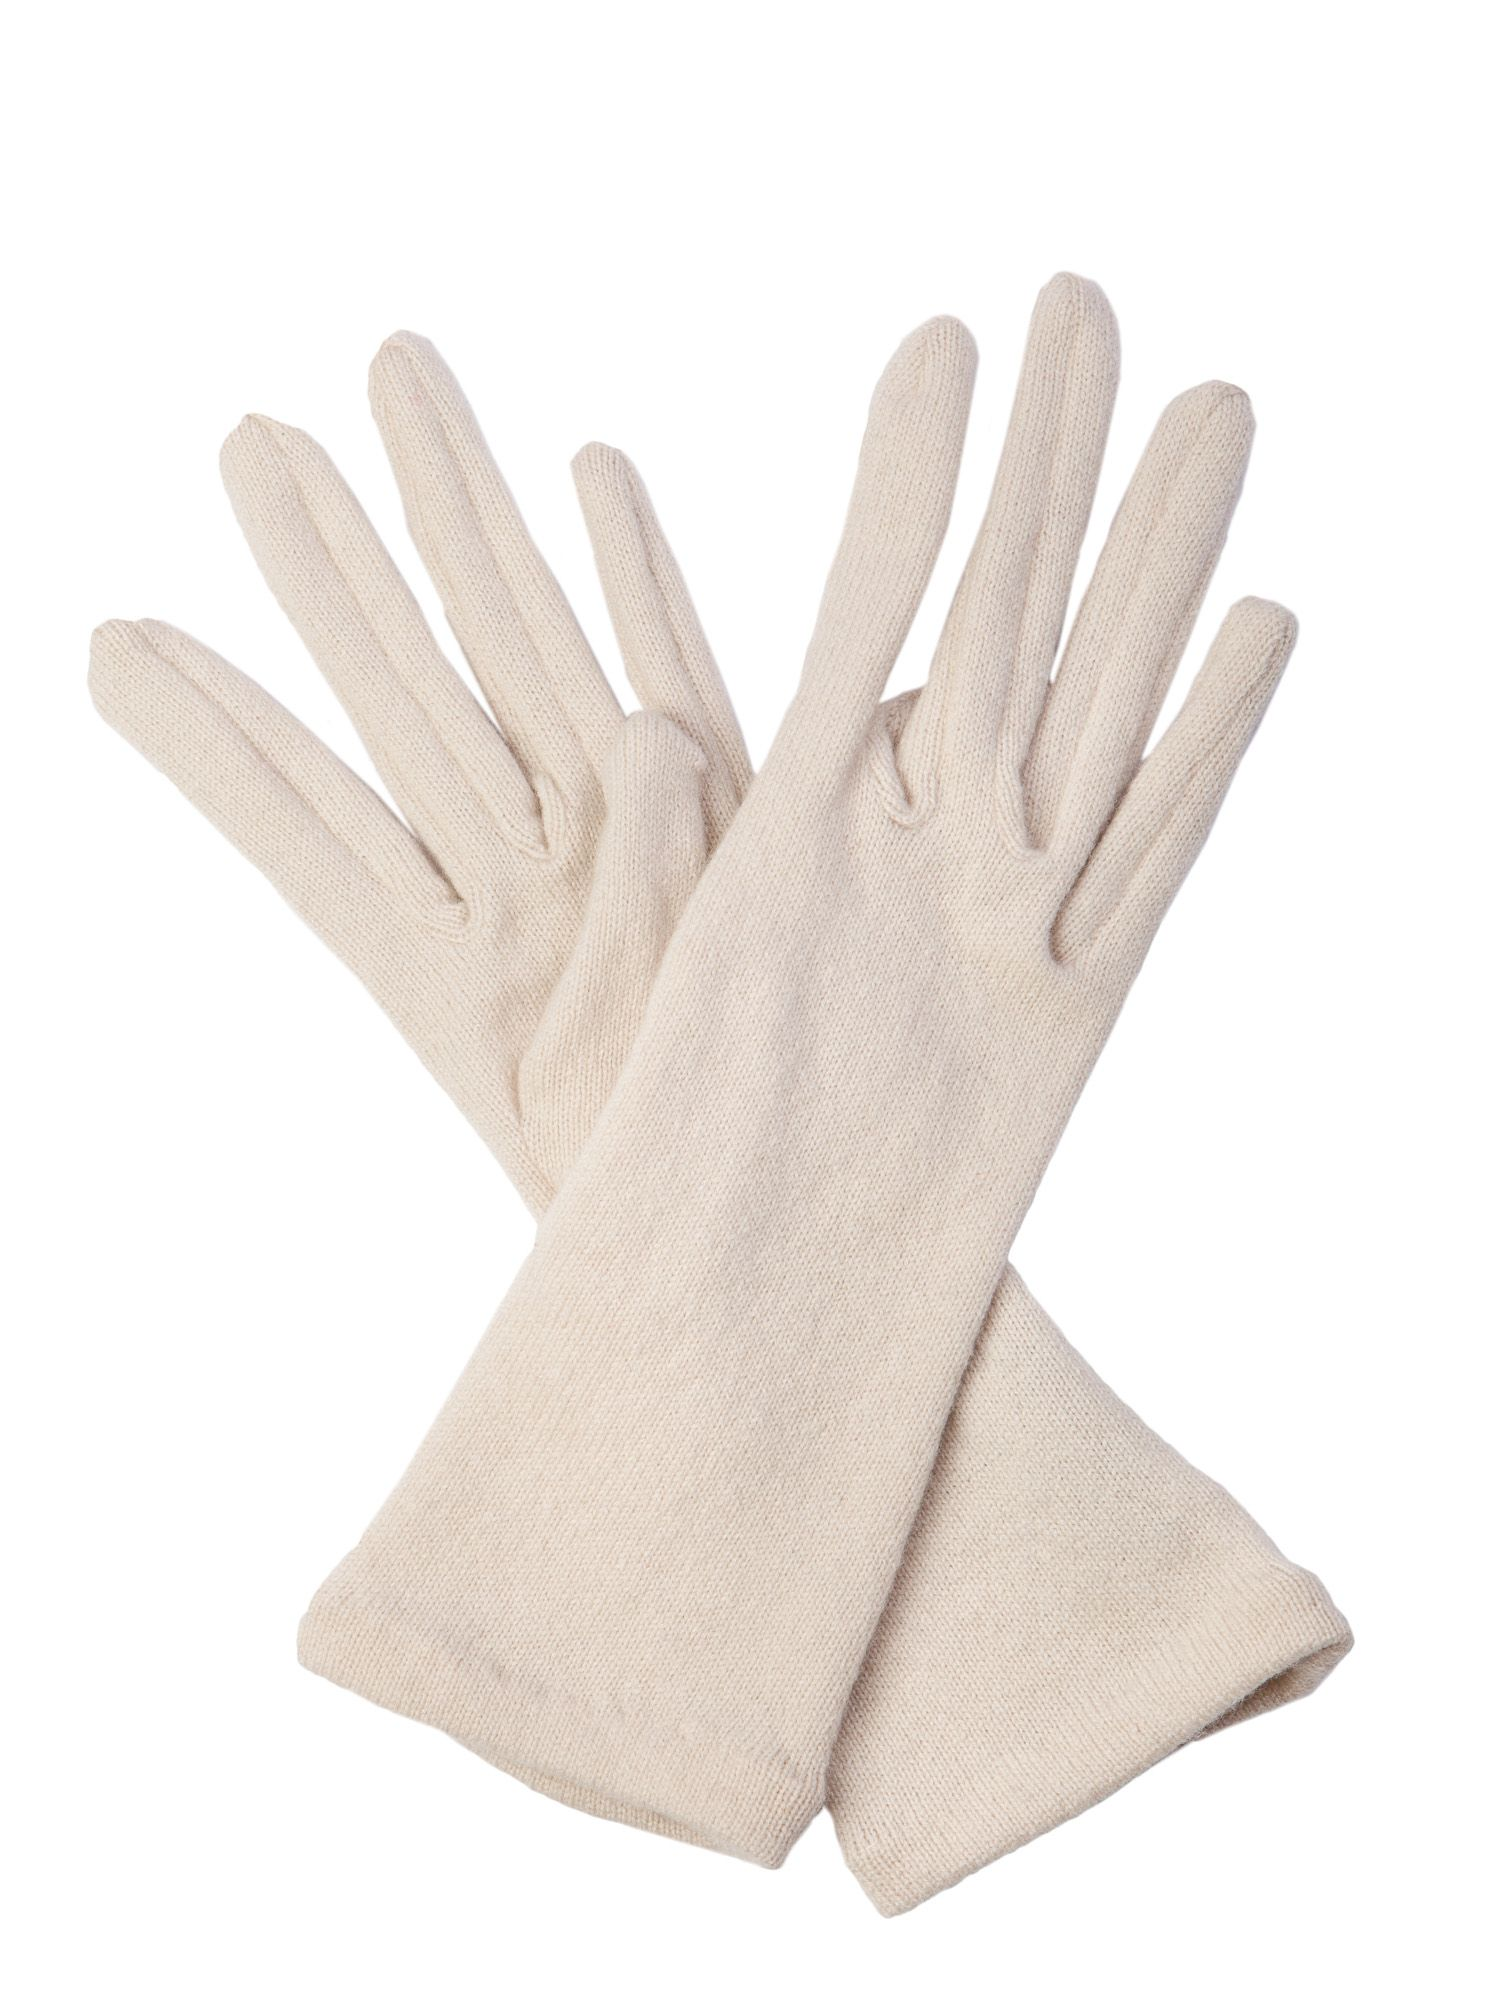 Vintage Style Gloves Cornelia James Tabitha Pure Cashmere Gloves £70.00 AT vintagedancer.com